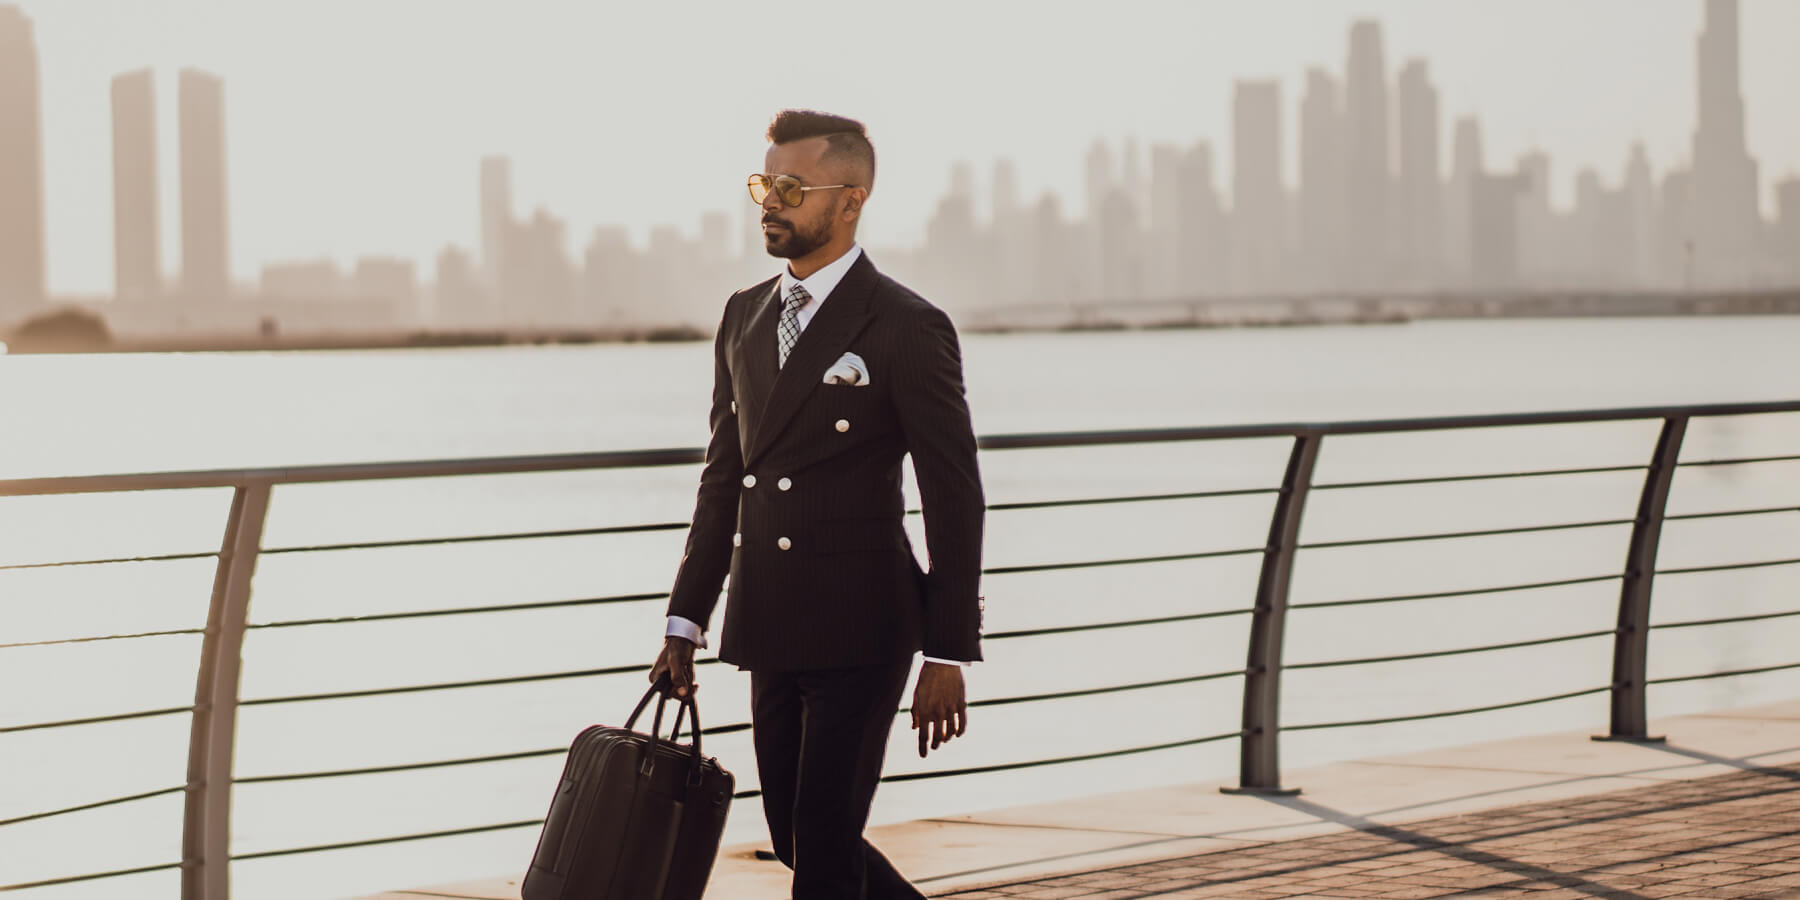 4 Types of Suit Every Man Should Have in His Wardrobe